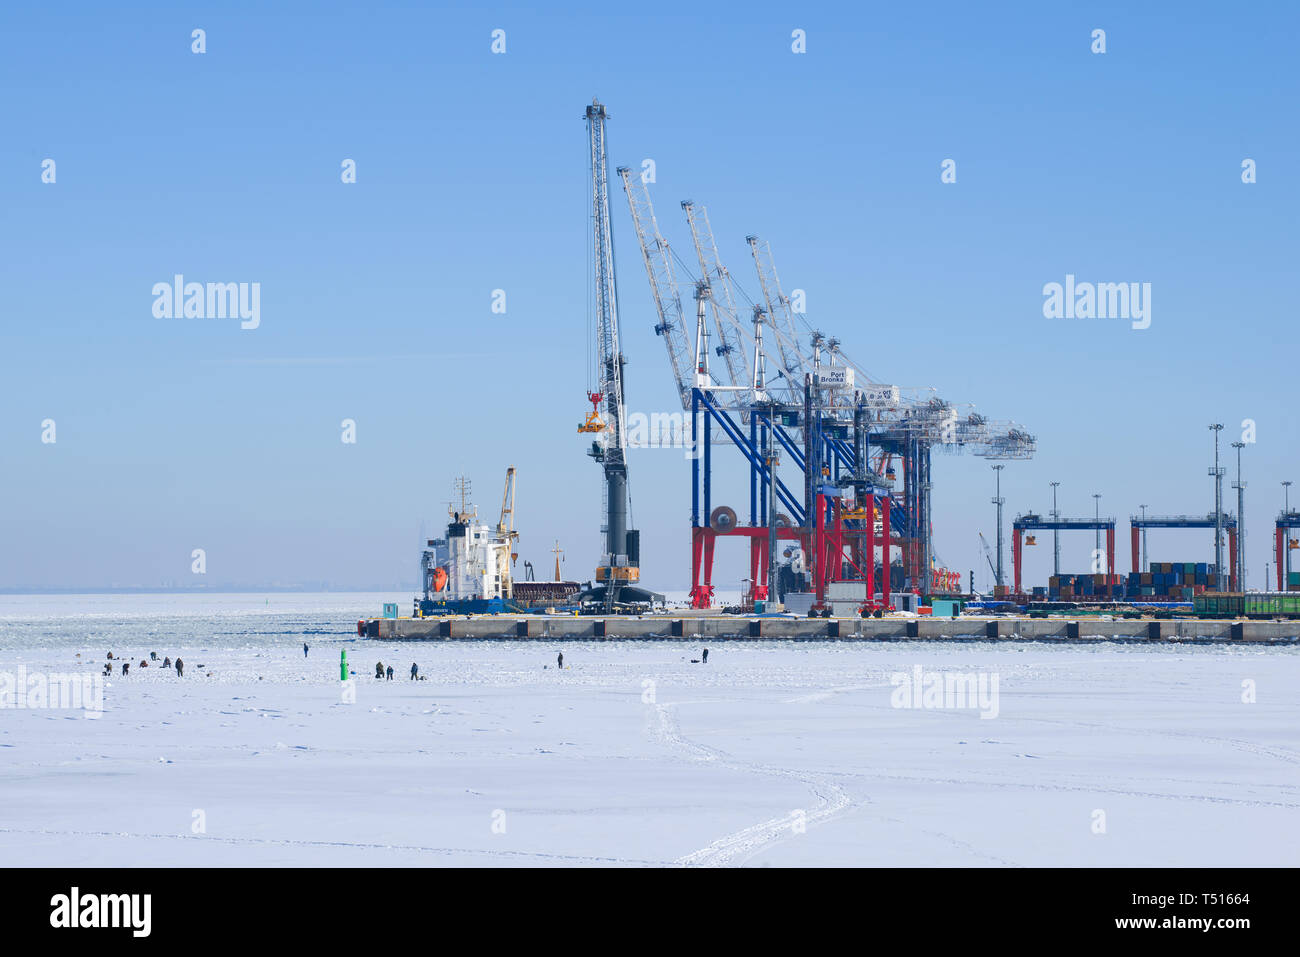 LOMONOSOV, RUSSIA - MARCH 05, 2018: View of the multifunctional cargo port 'Bronka' on a sunny March day - Stock Image